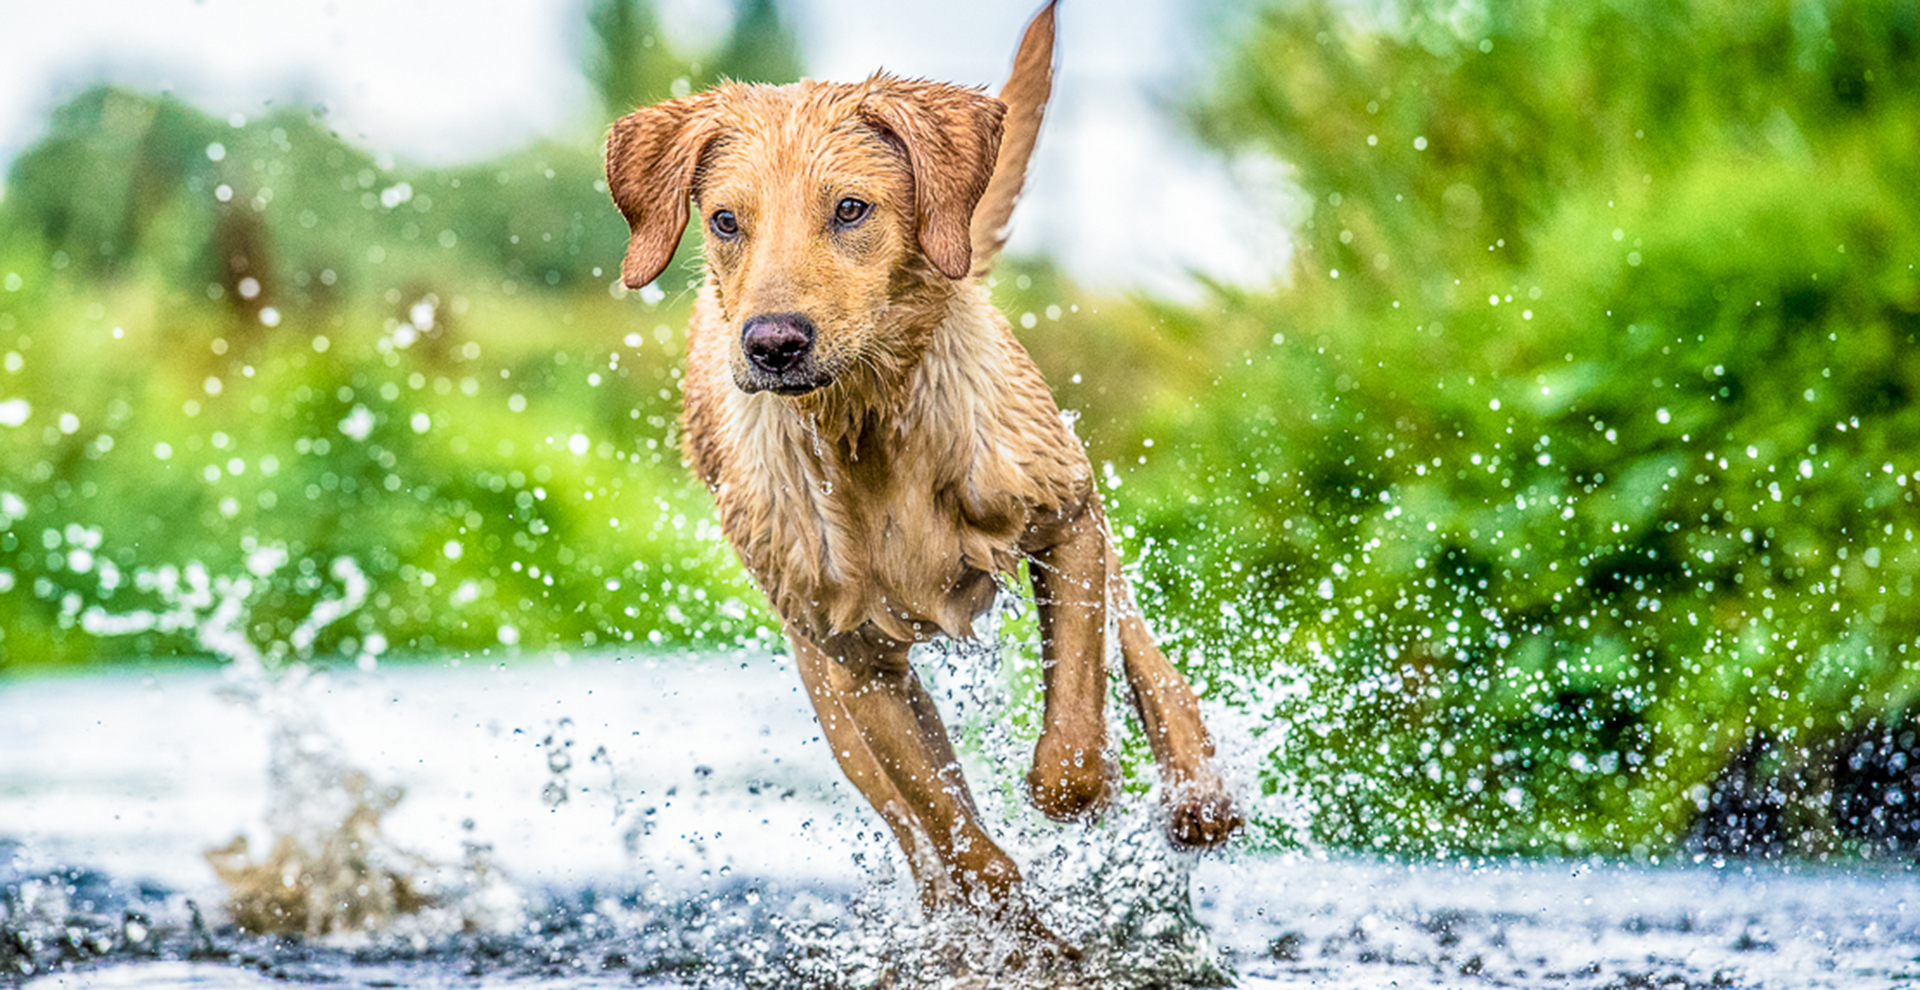 commercial editorial dog photographer in uk